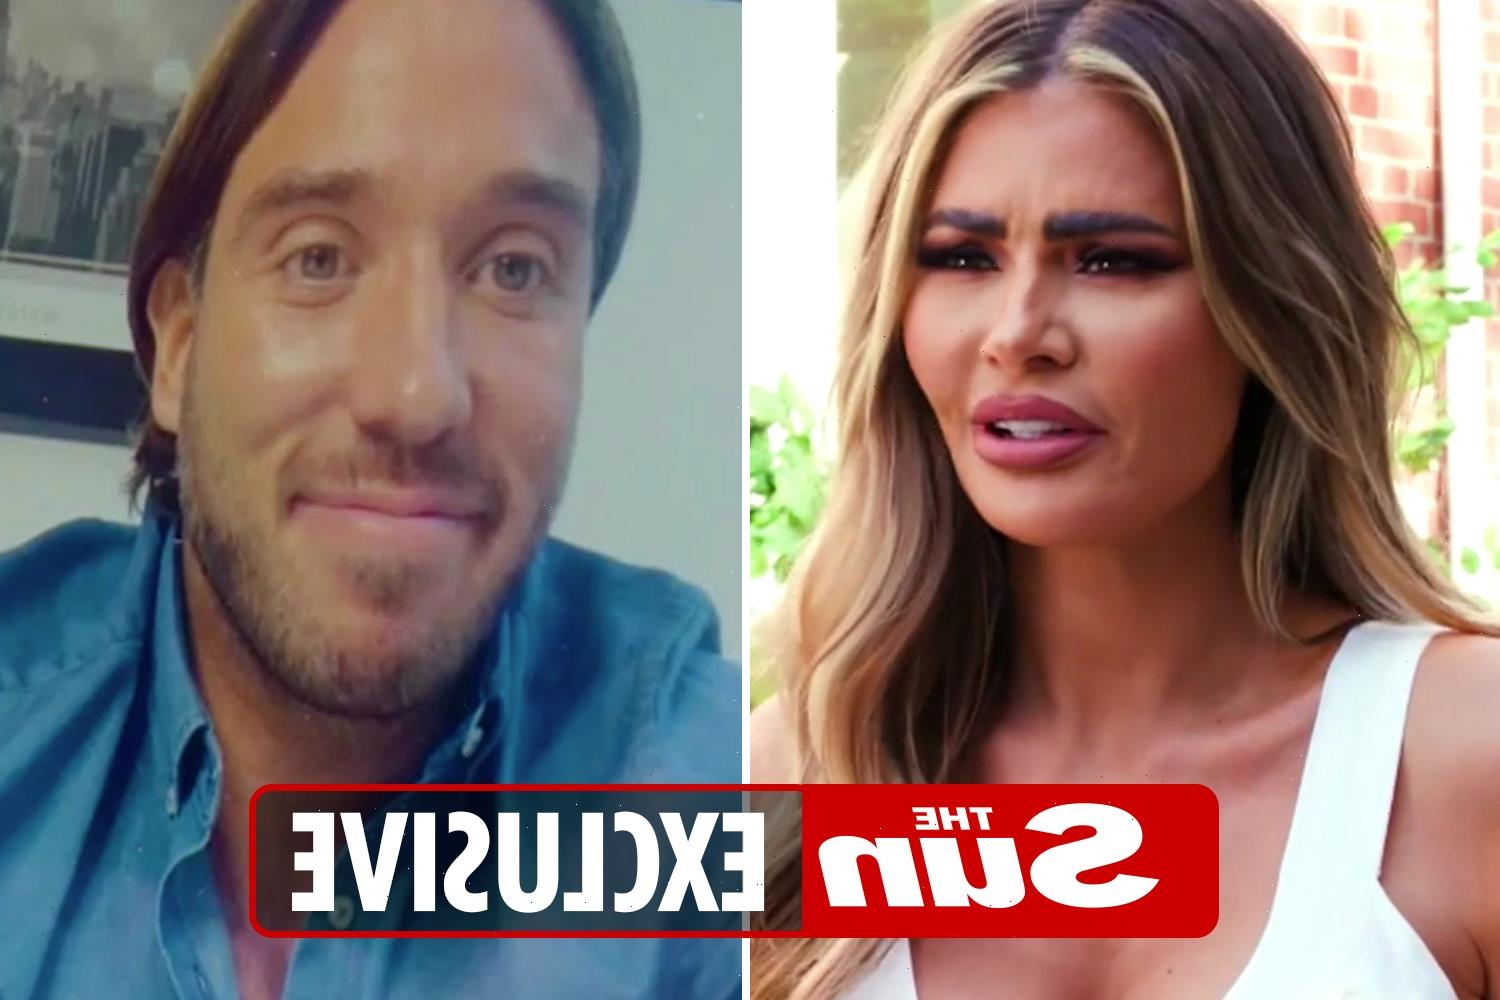 Chloe Sims reckons James Lock avoided Towie reunion because he's 'EMBARRASSED' about bedding Chloe Brockett